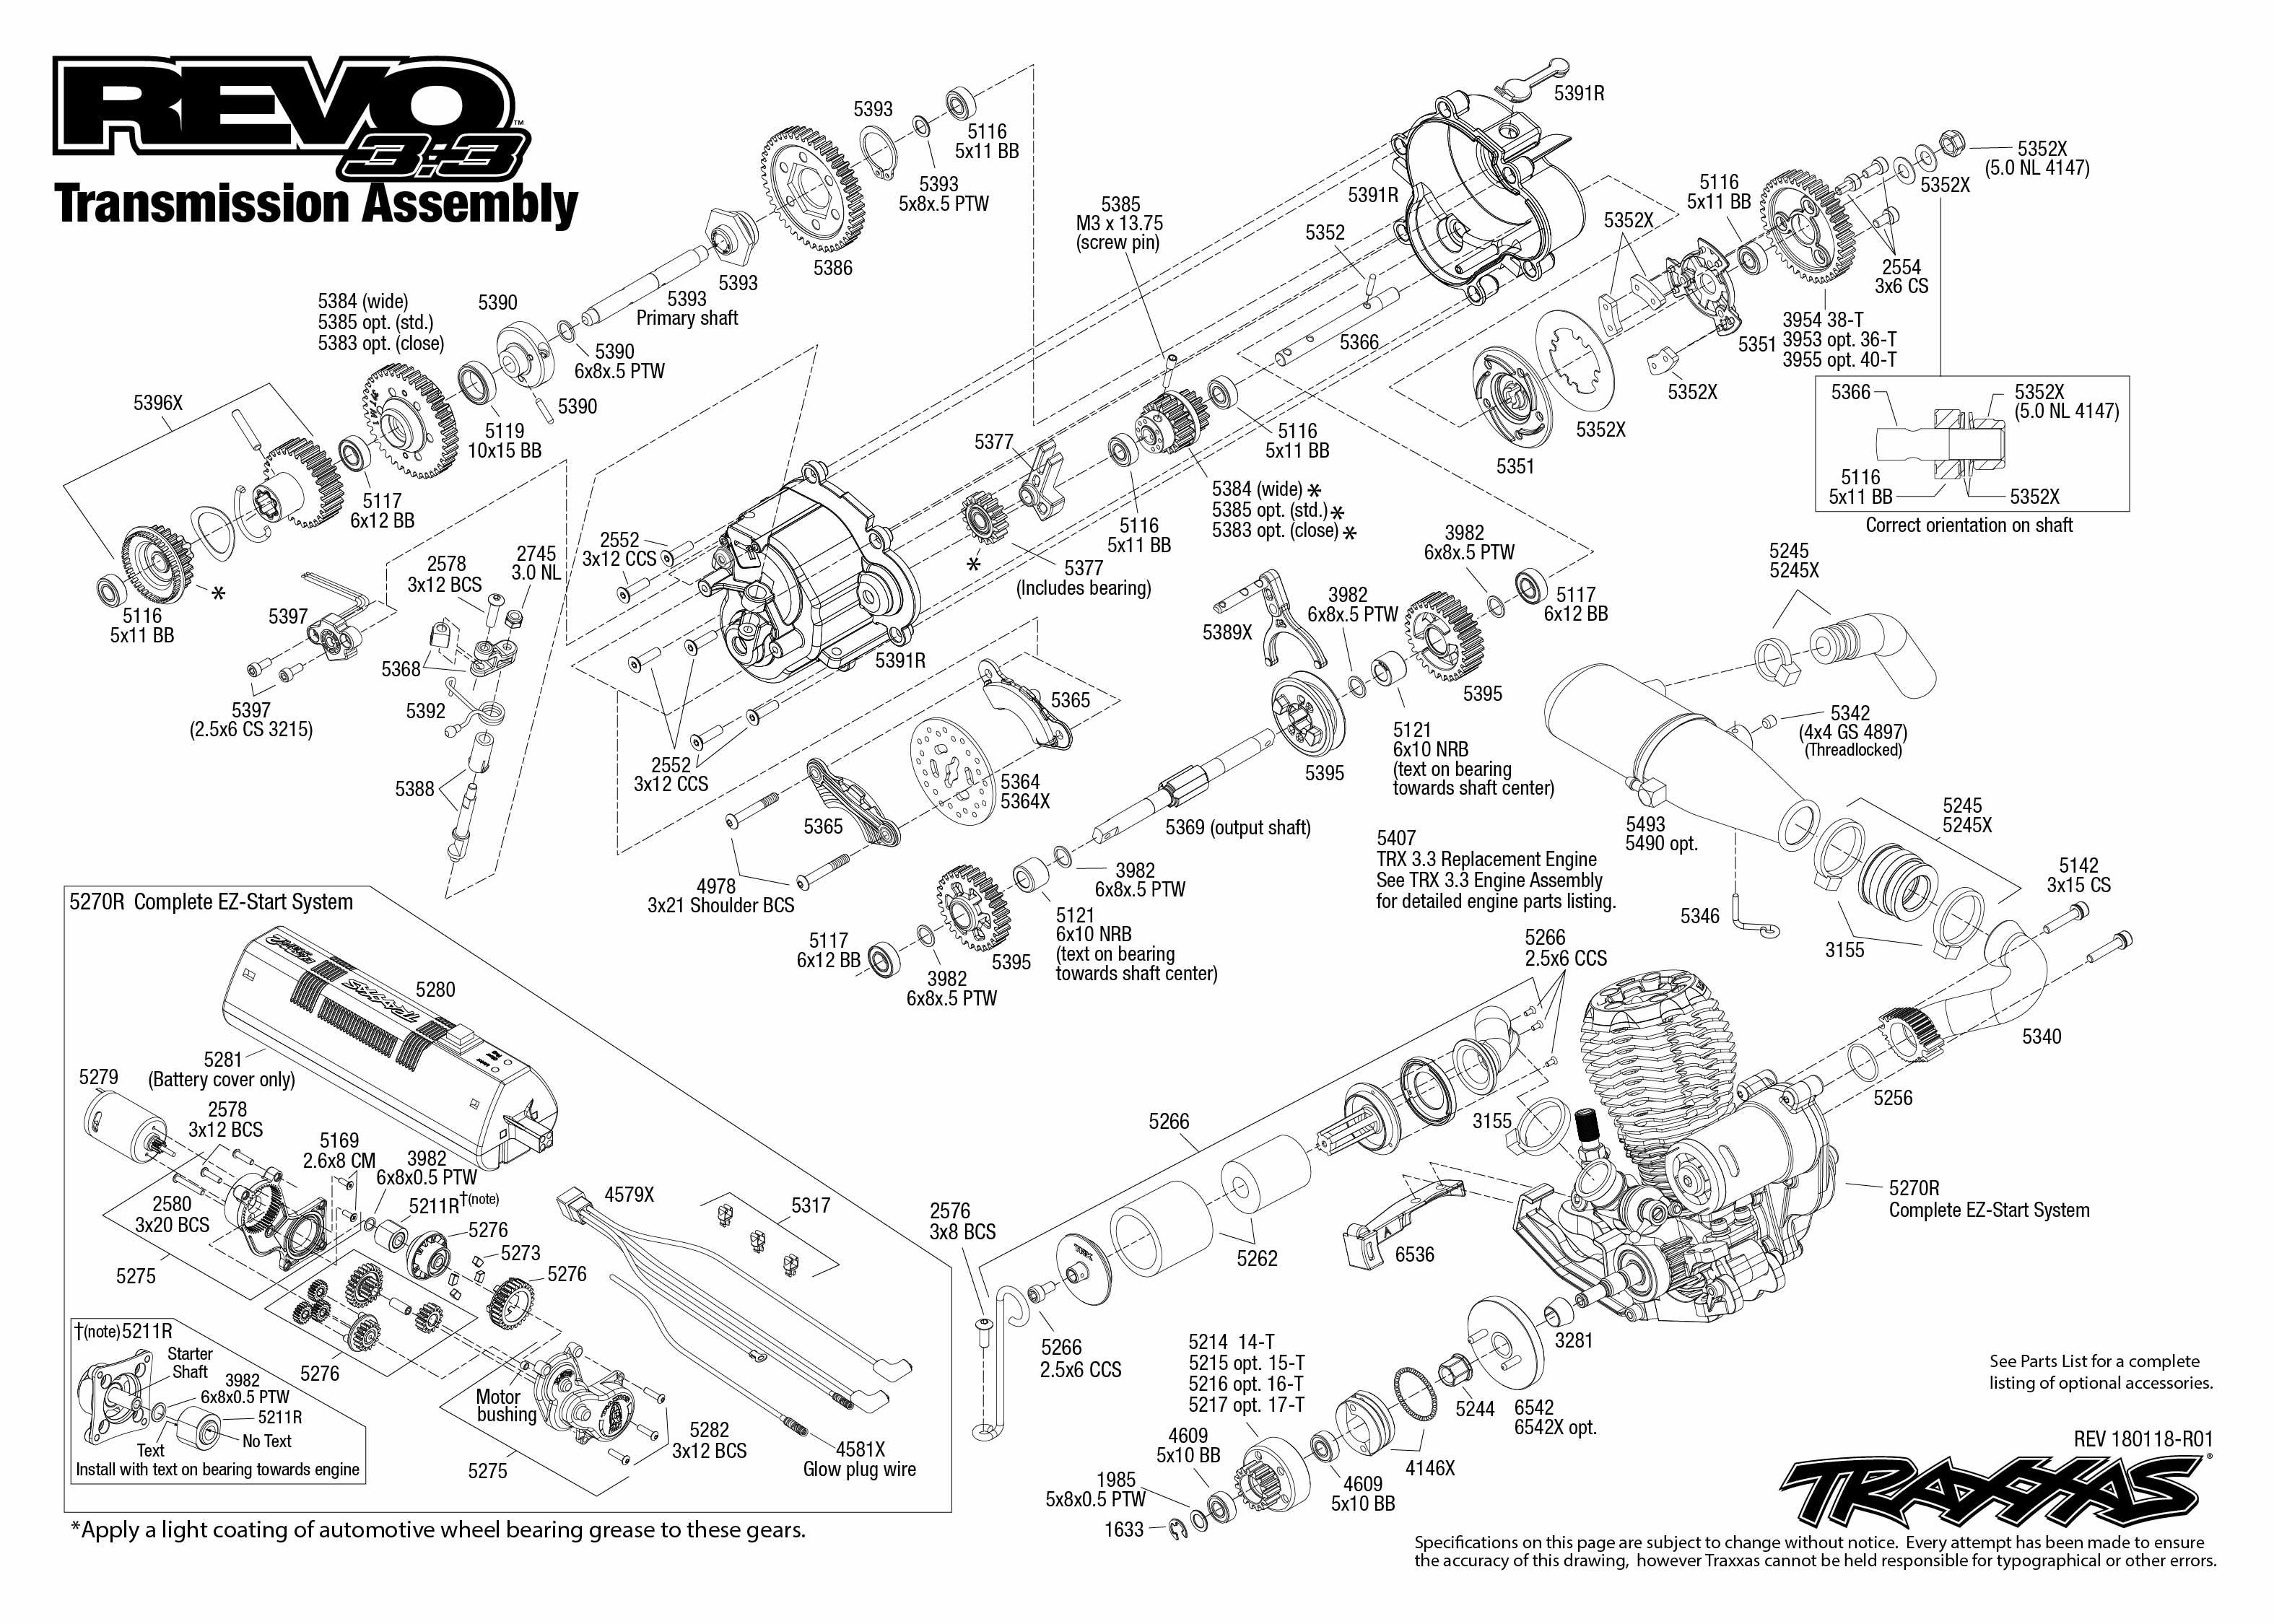 3 8 Gm Engine Exploded View